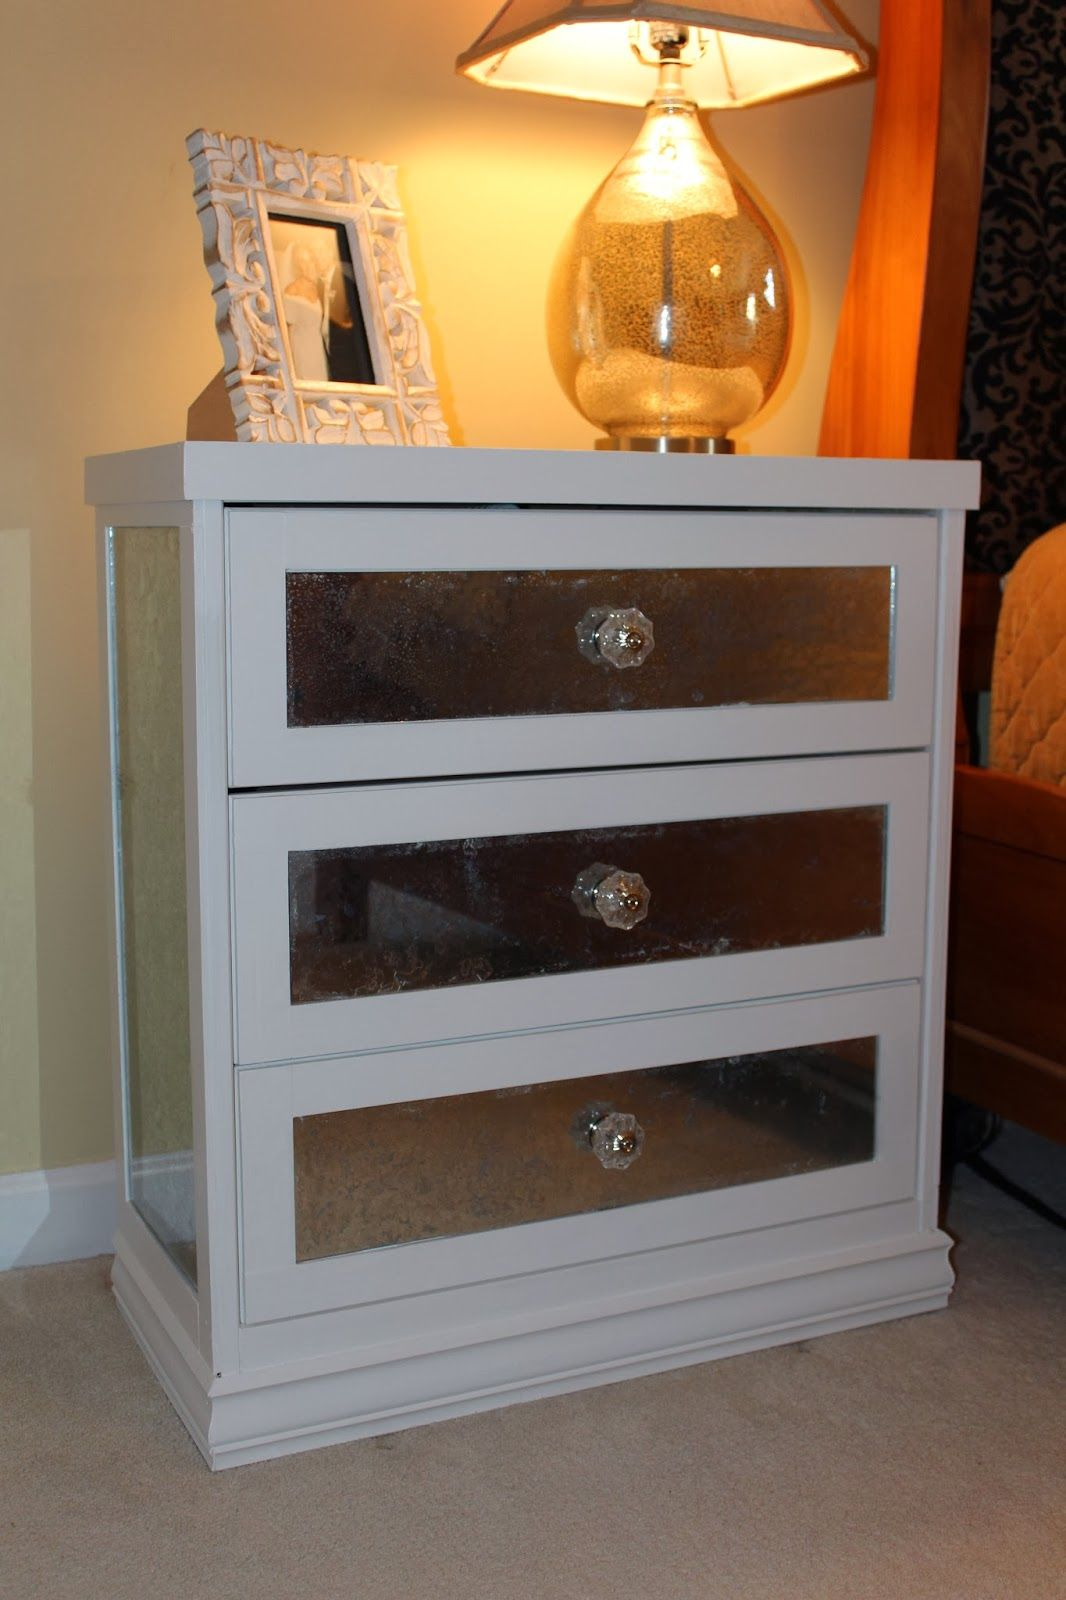 Antsi pants diy mirrored nightstand ikea rast hack